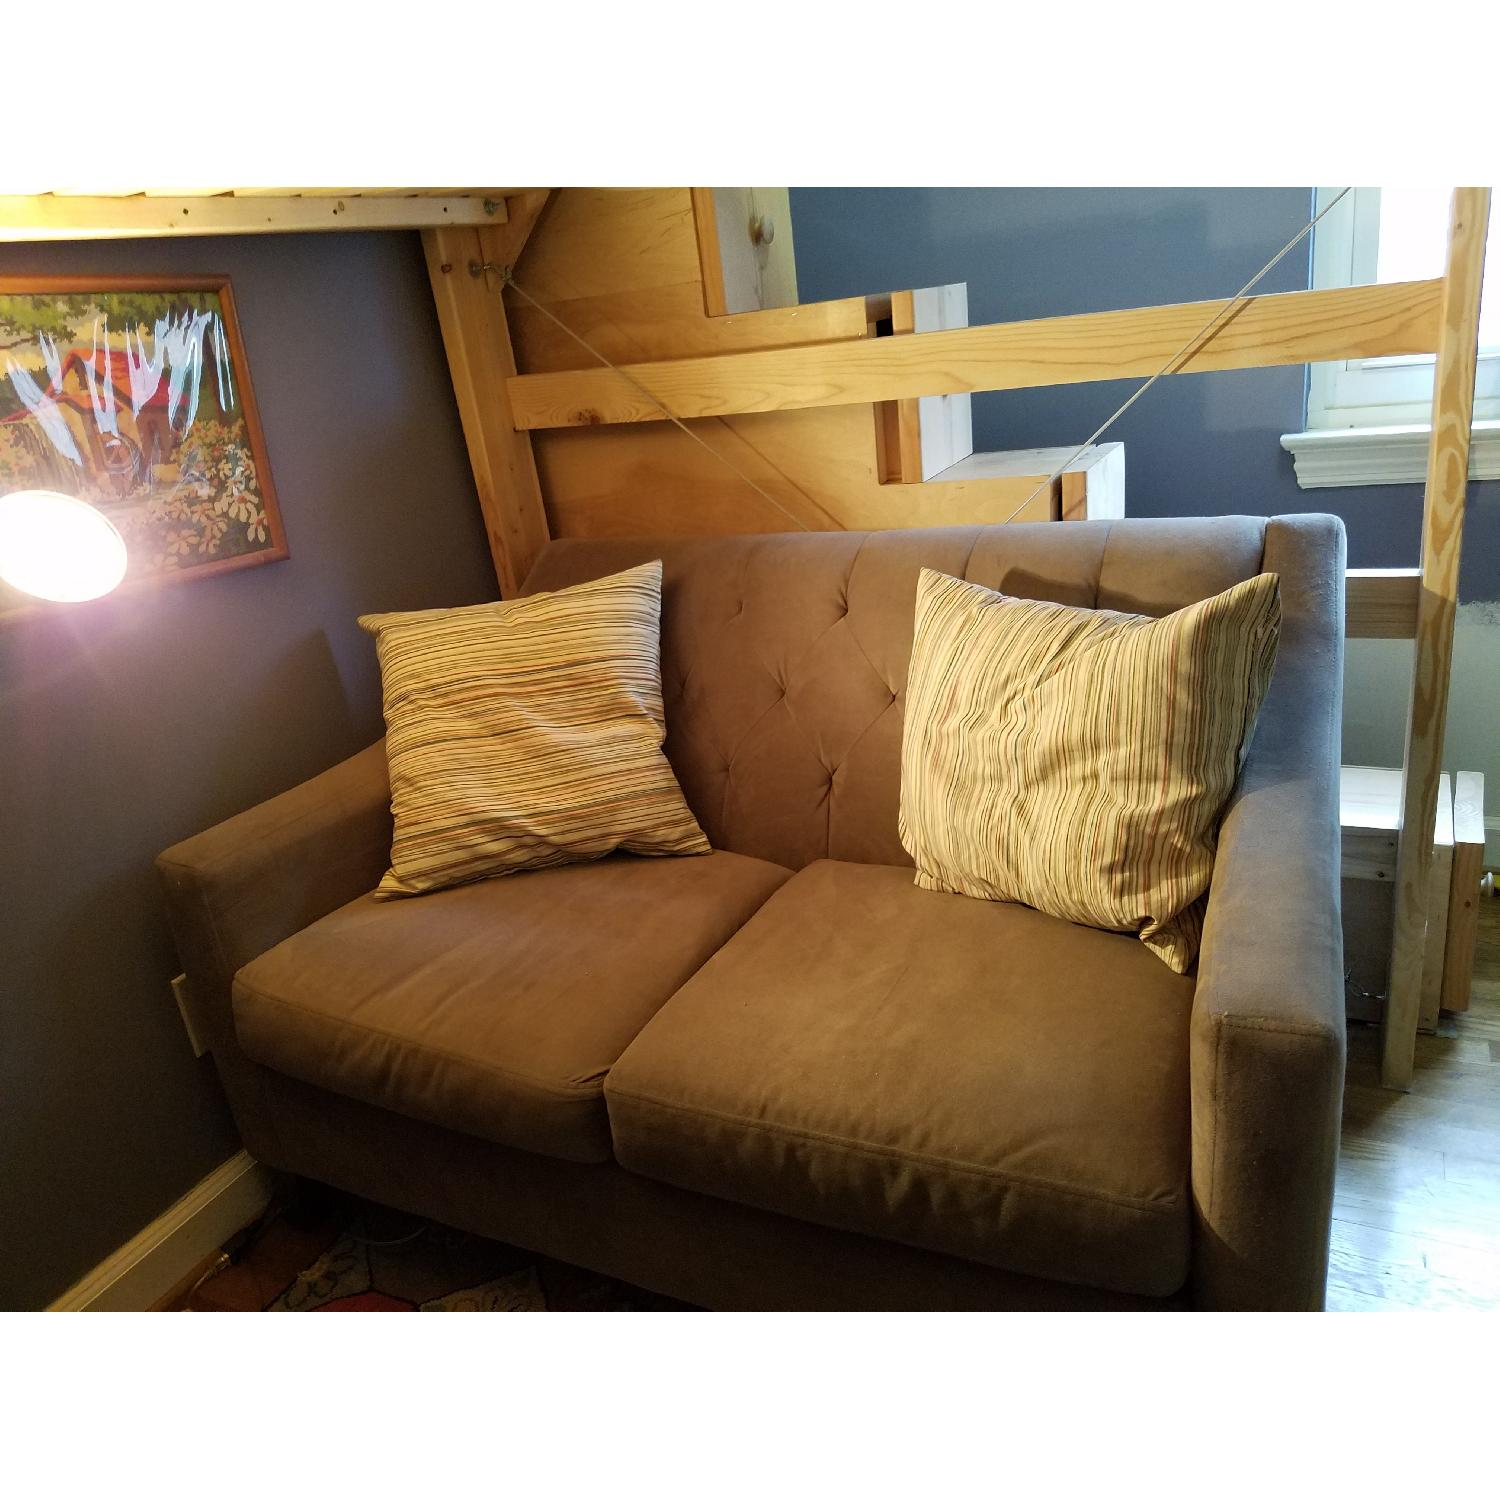 Custom-Made Wooden Full Loft Bed w/ Stairs - image-8